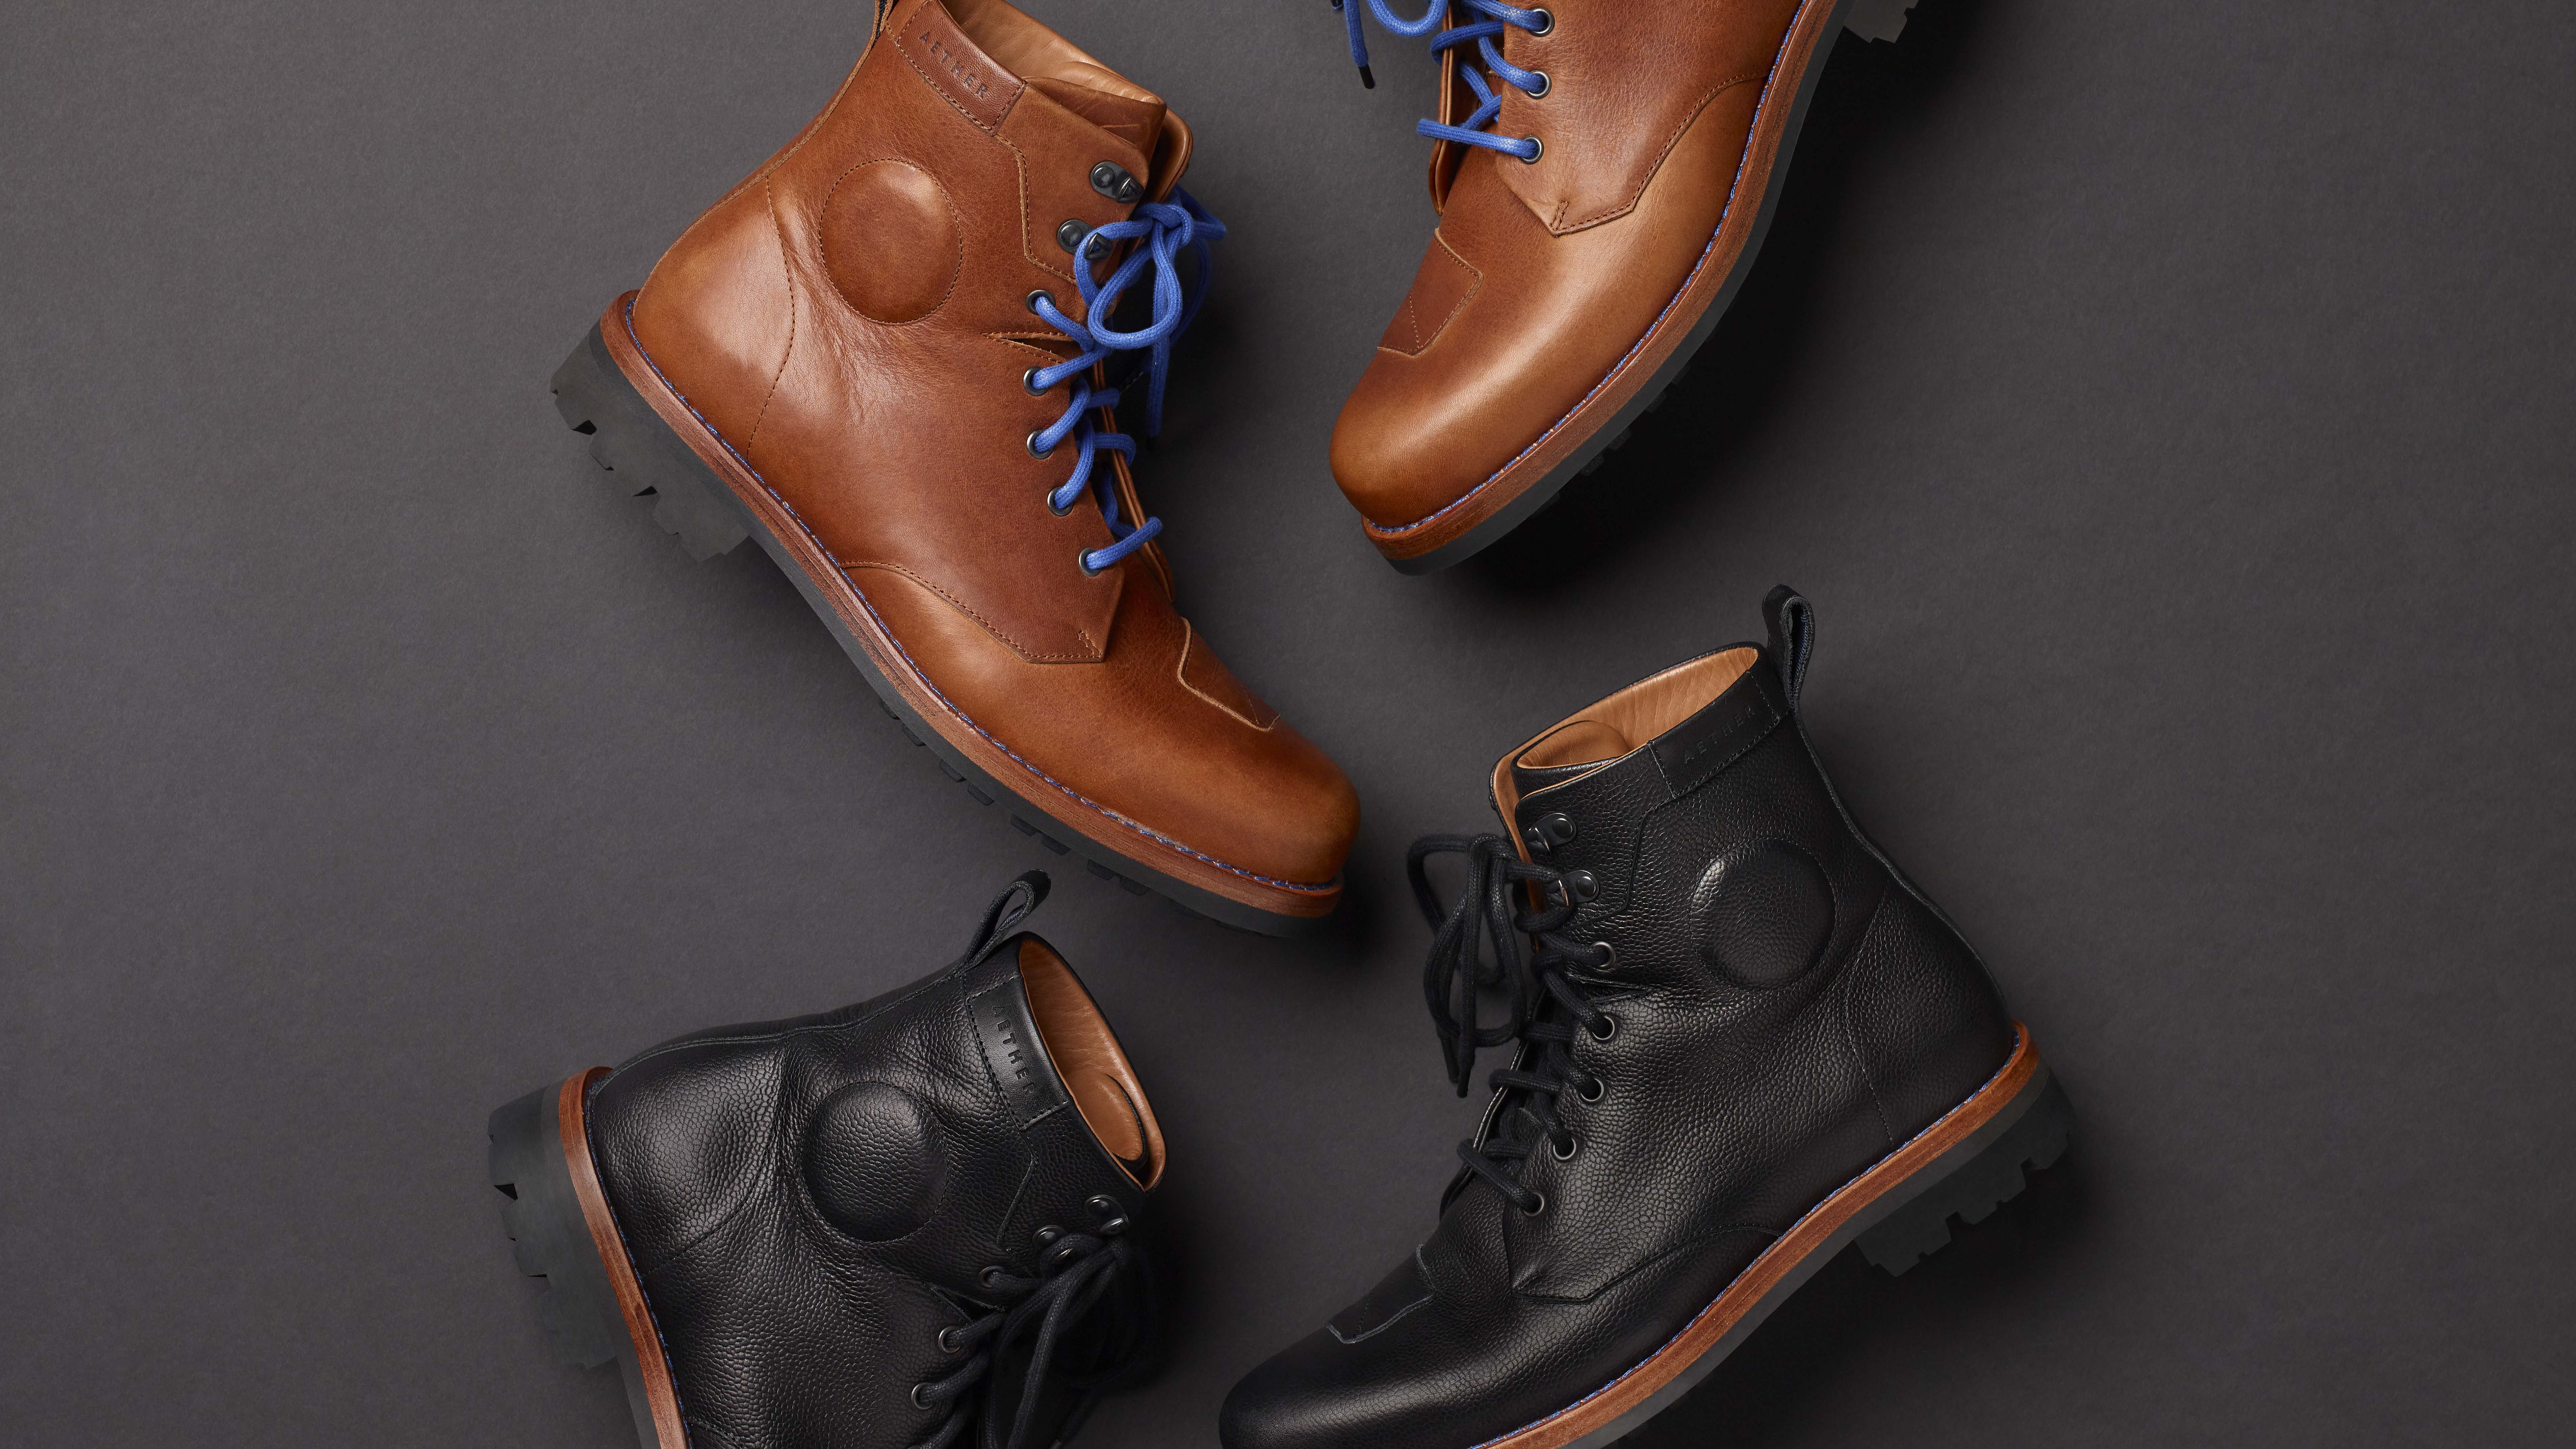 The Aether Motorcycle Boots That Are Stylish Enough For The Office